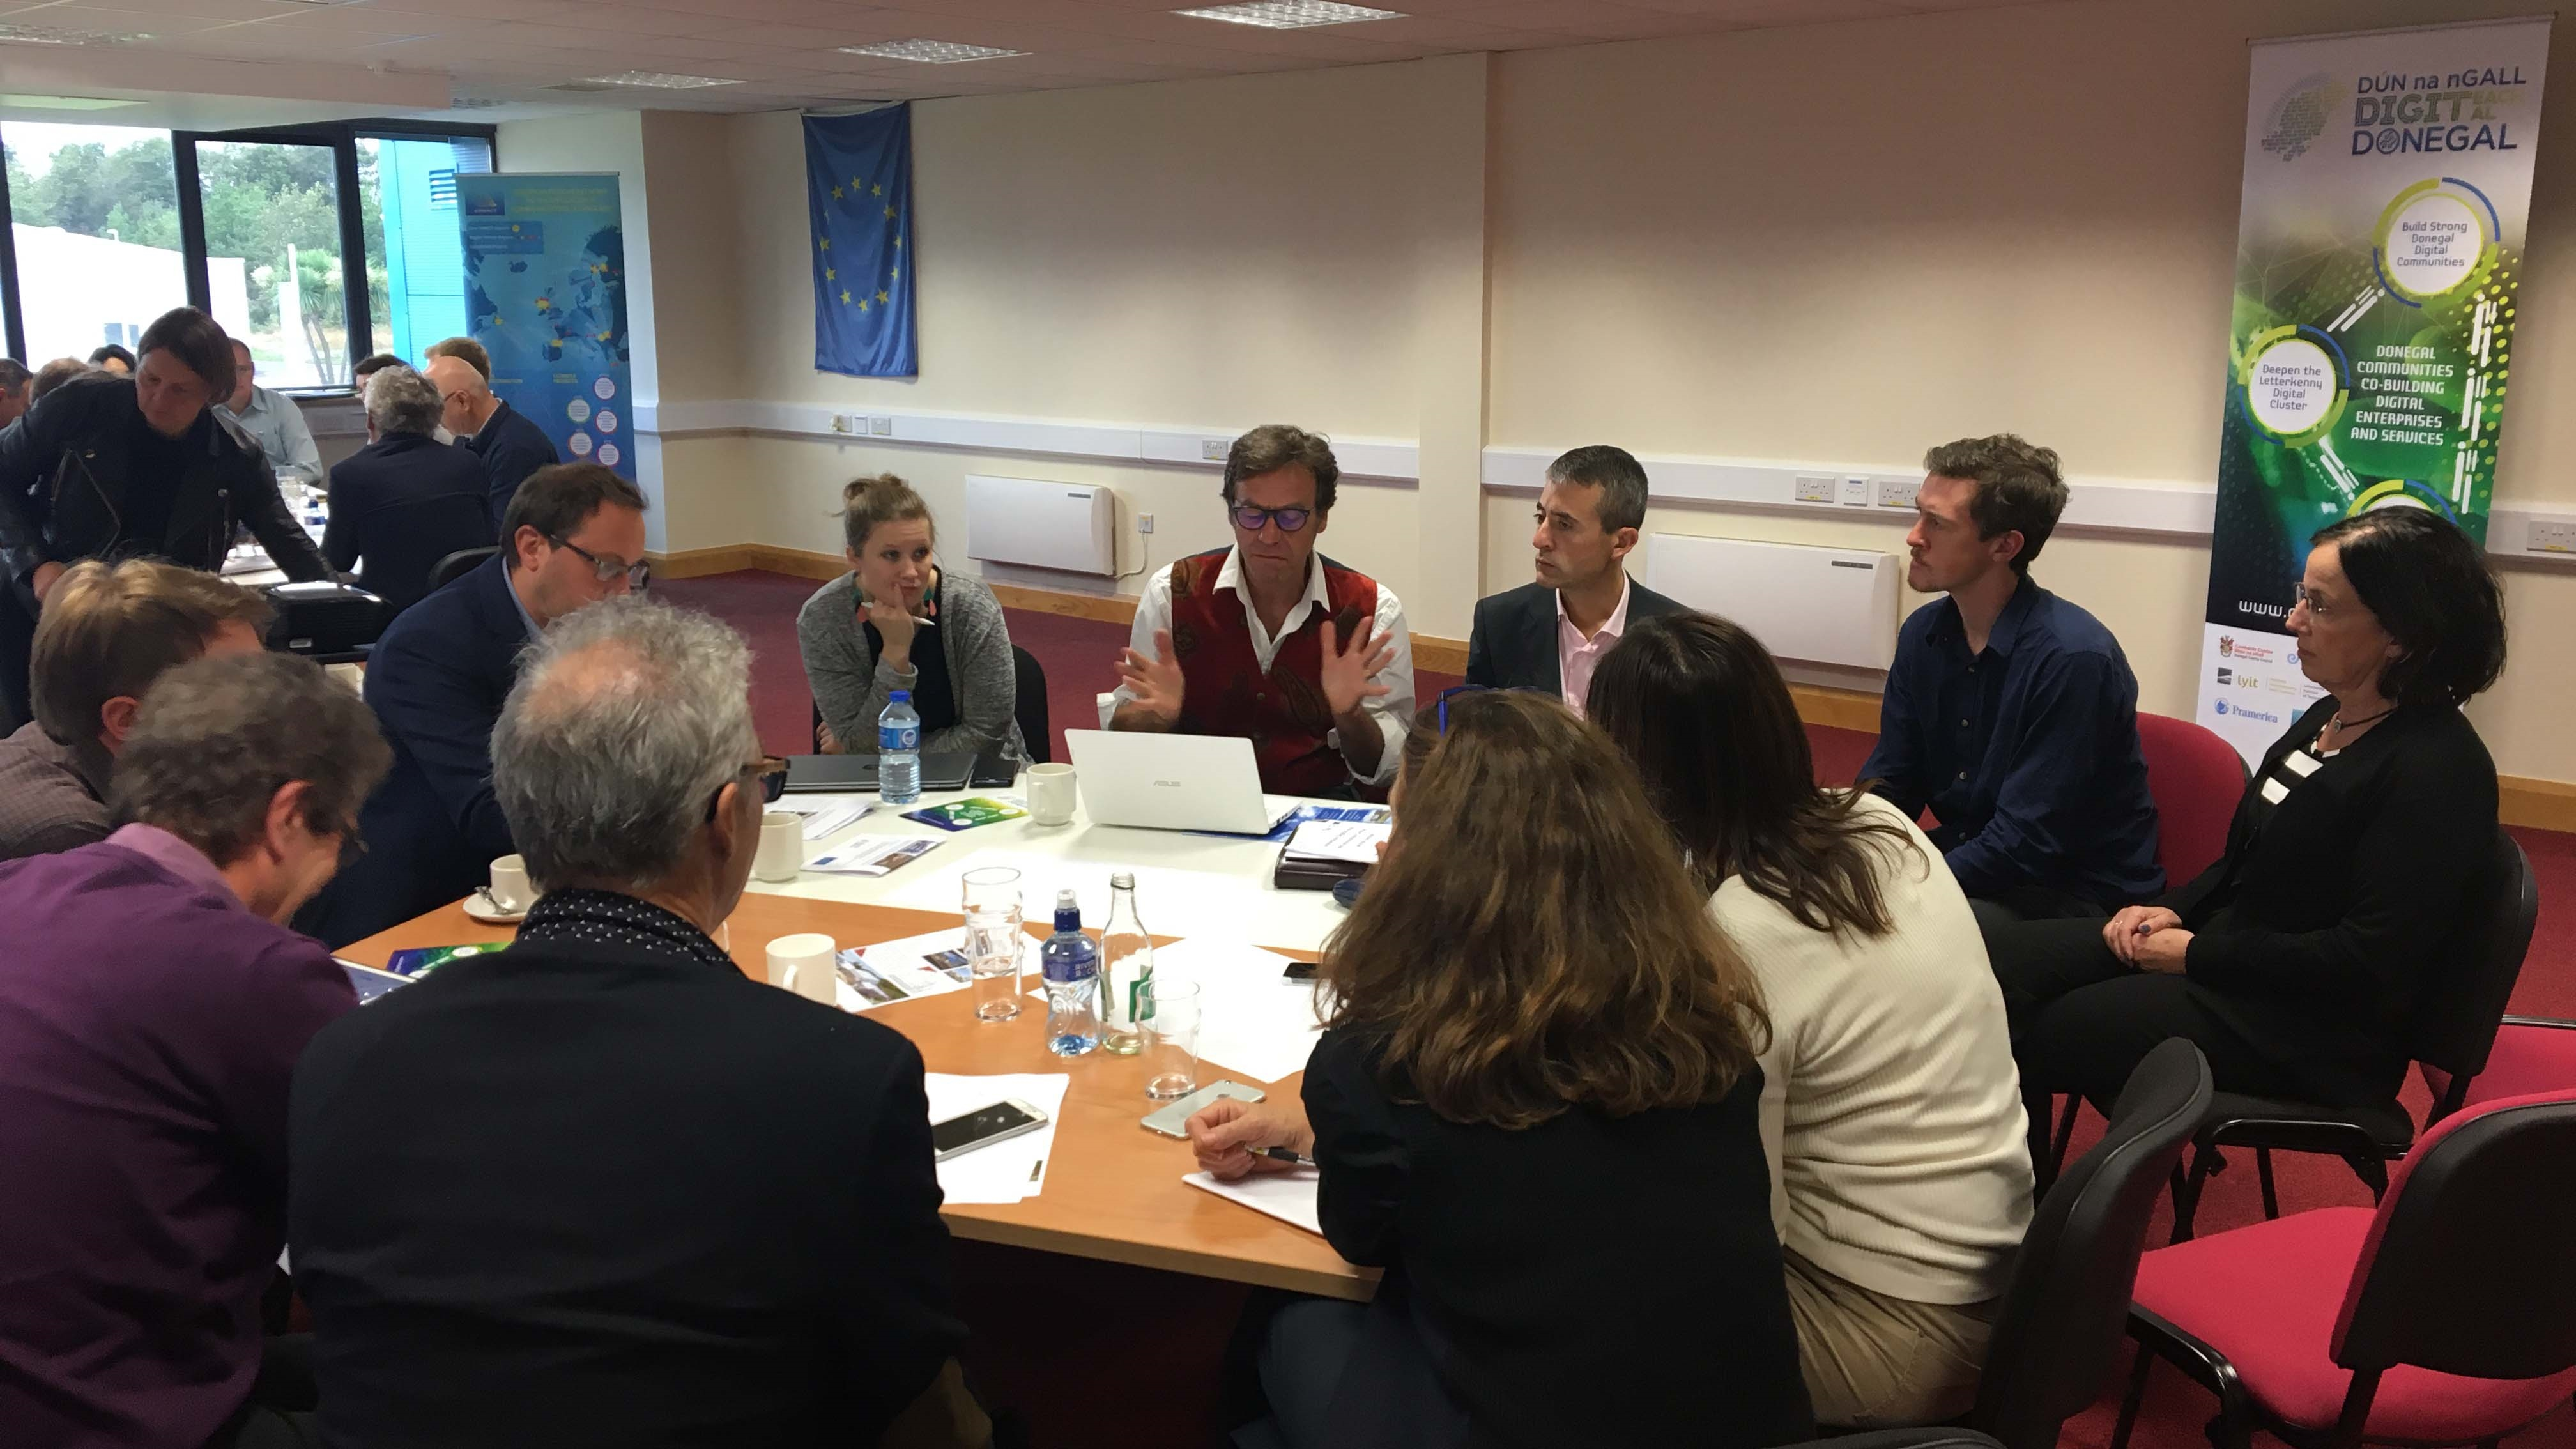 Donegal Digital Action Plan receives inspiration from other European Digital Innovation Hubs